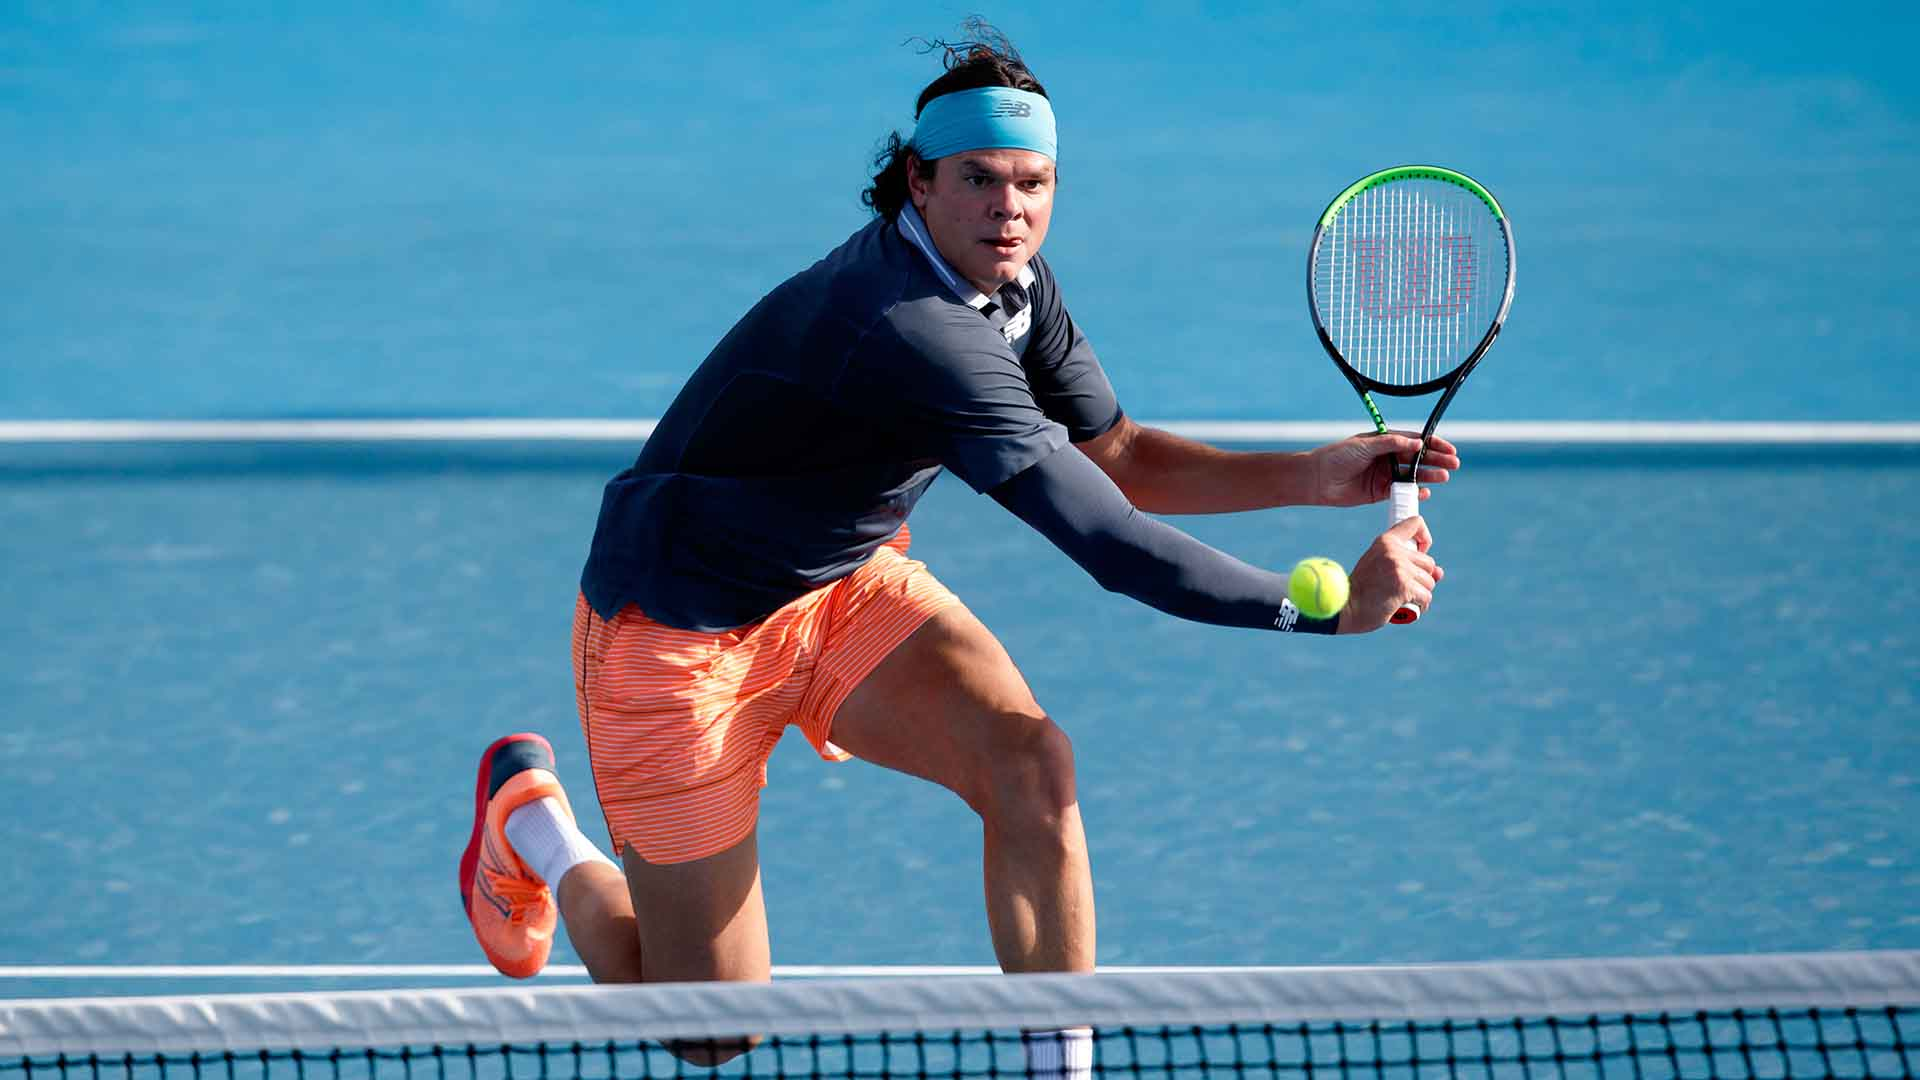 Milos Raonic wins 71 per cent of net points (25/35) to defeat Marton Fucsovics in four sets at the Australian Open on Friday.